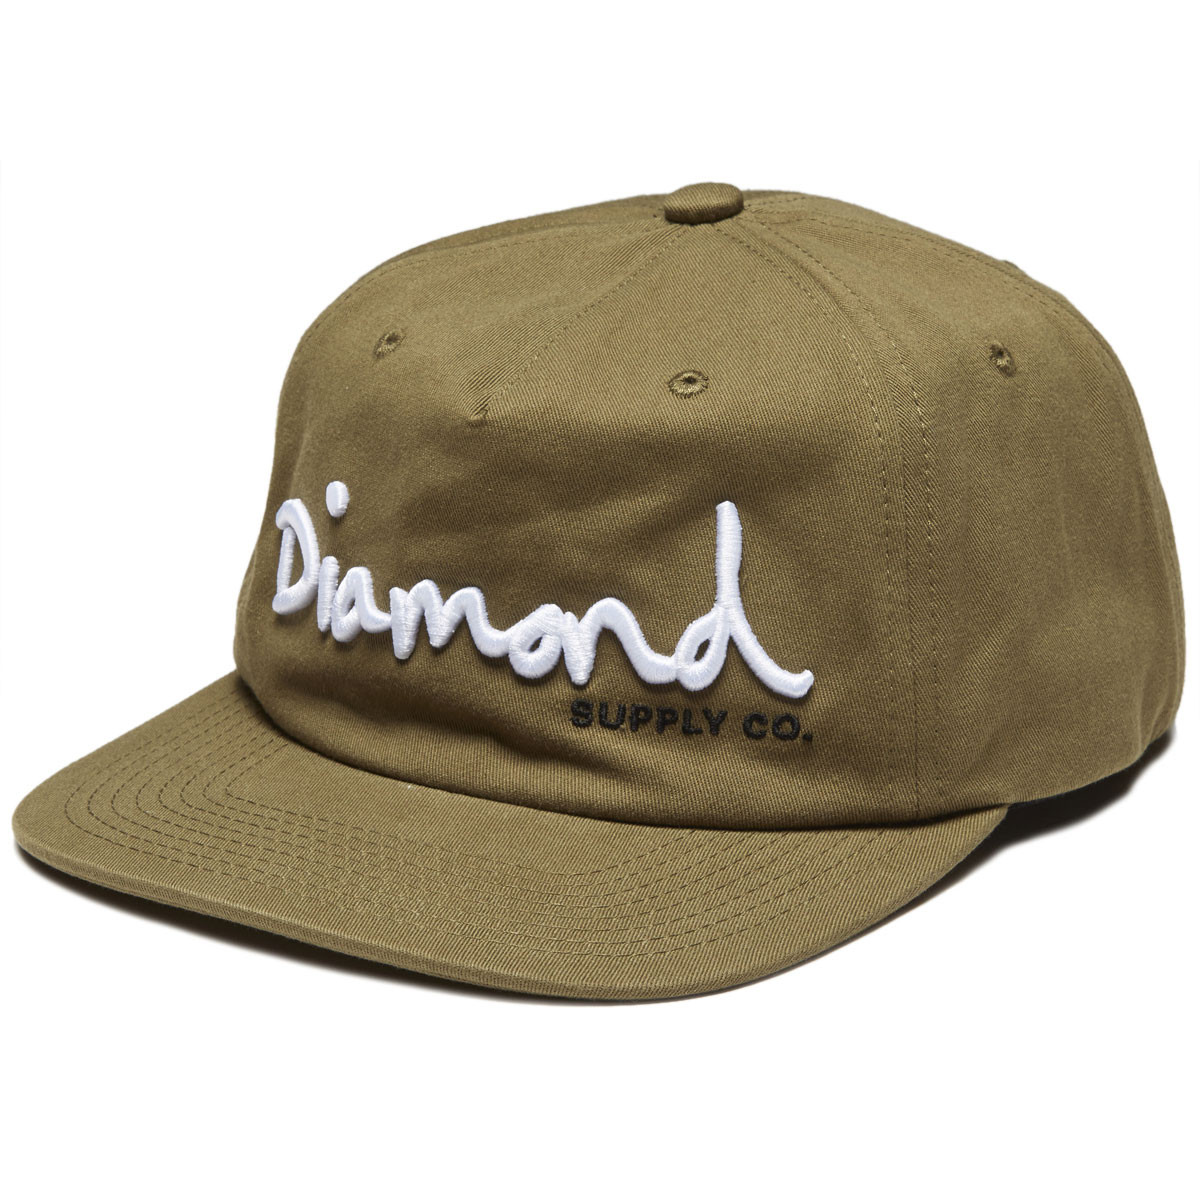 competitive price 987f4 b38f9 Diamond Supply Co. Og Script Unstrucutred Strapback Hat - Military Green